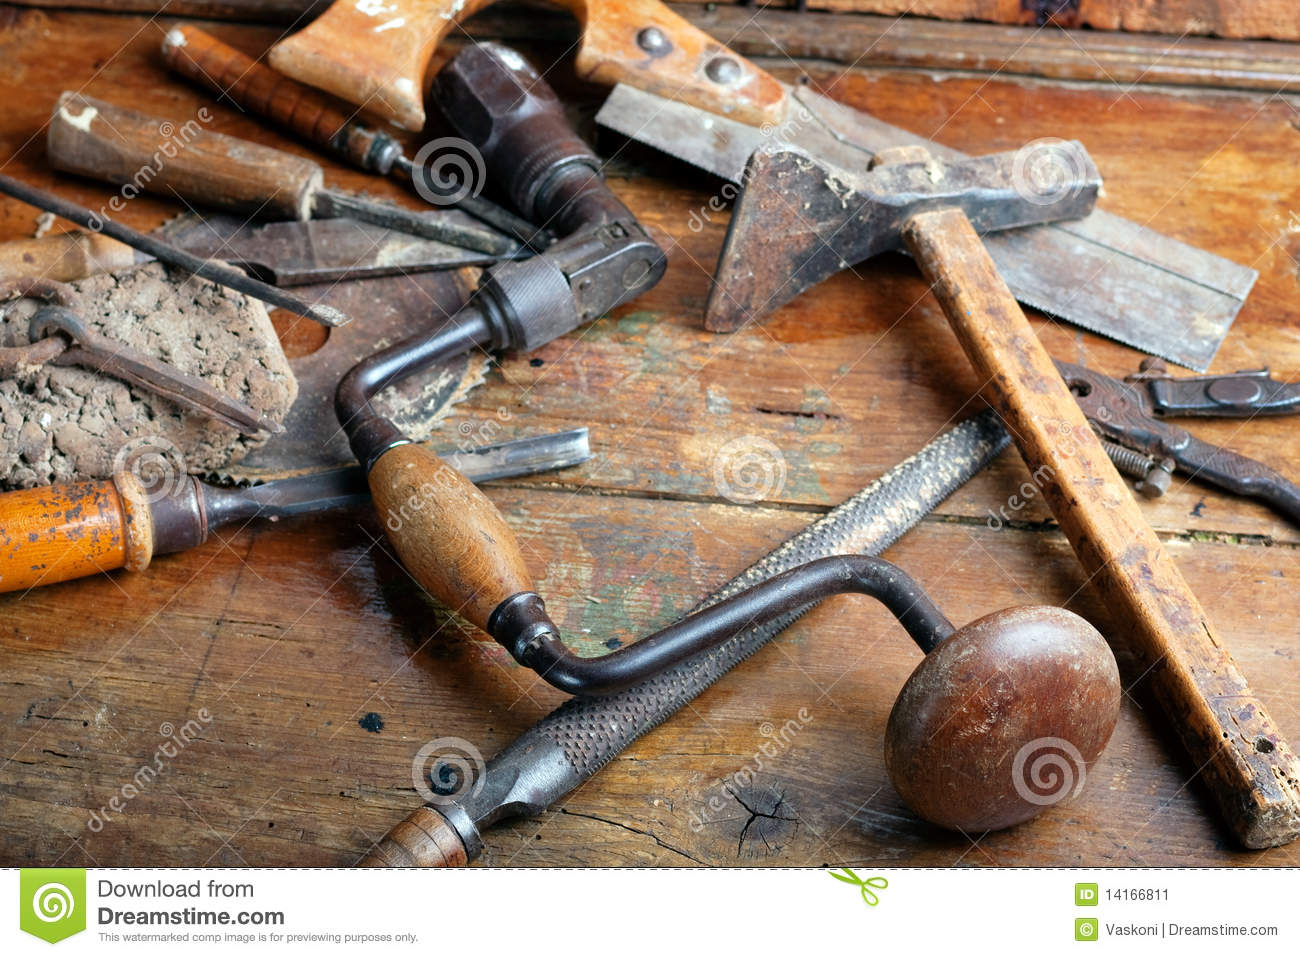 Vintage Woodworking Tools - DIY Woodworking Projects